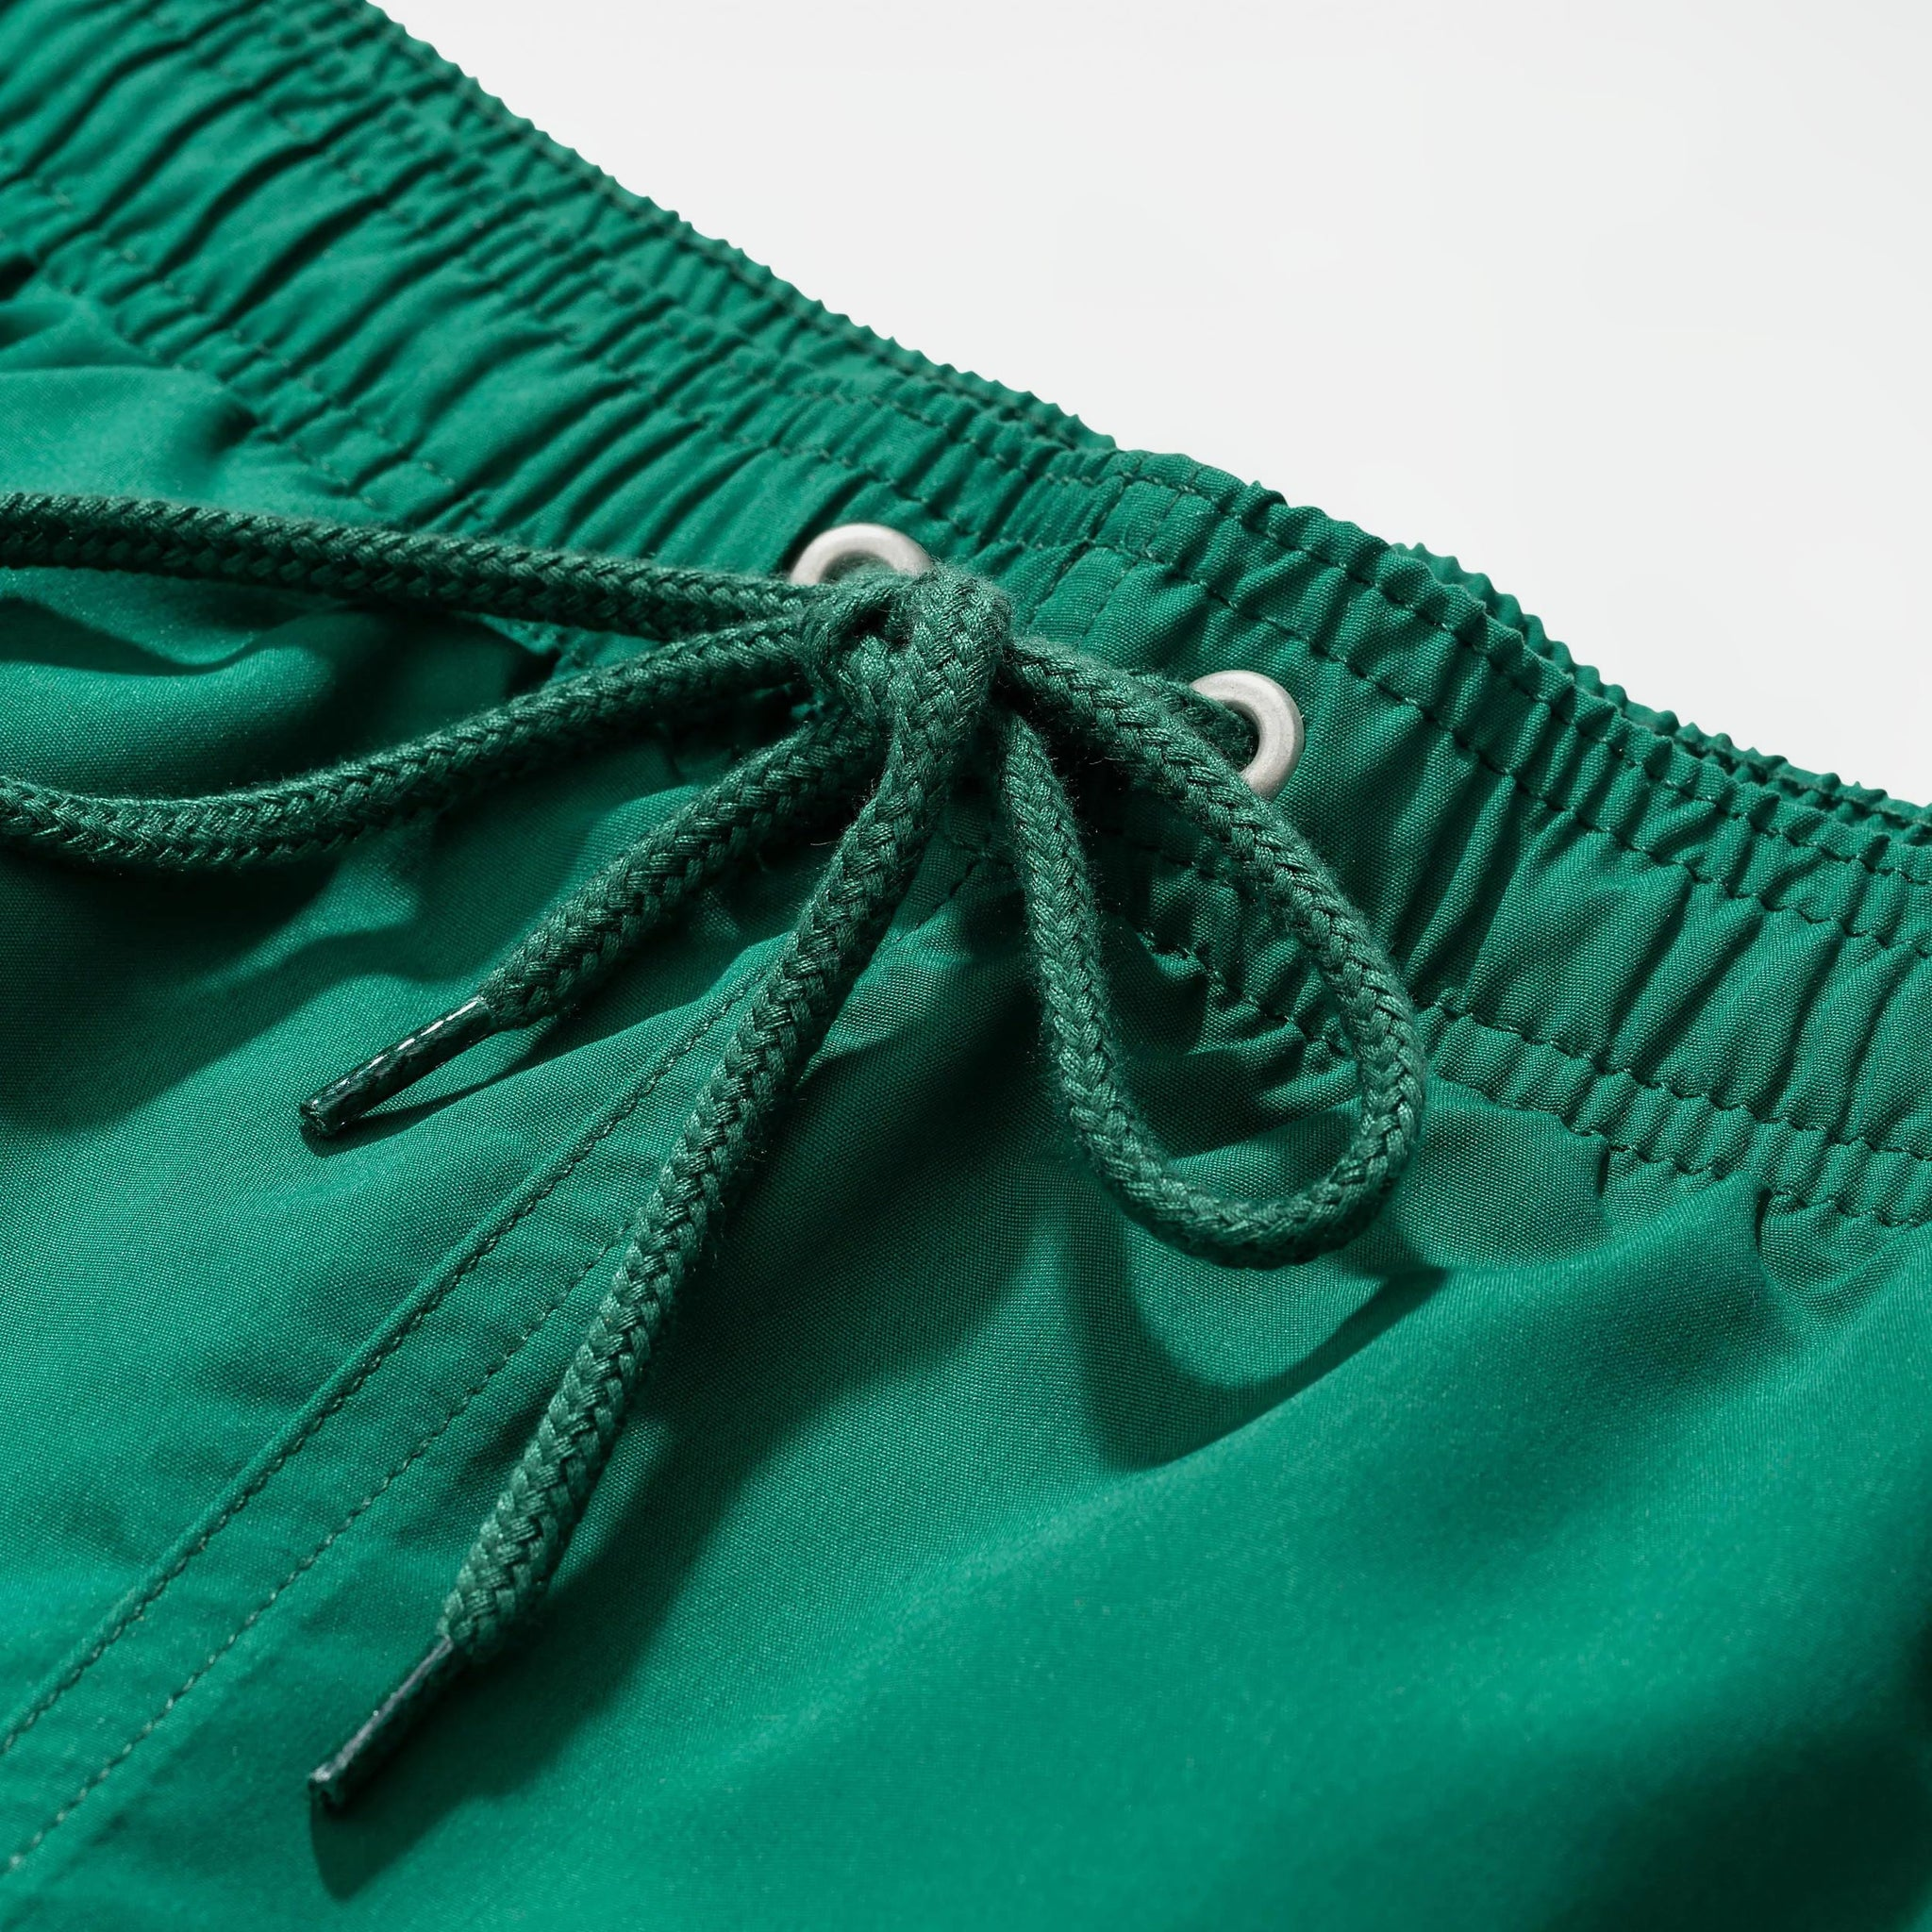 Hauge swim shorts sporting green